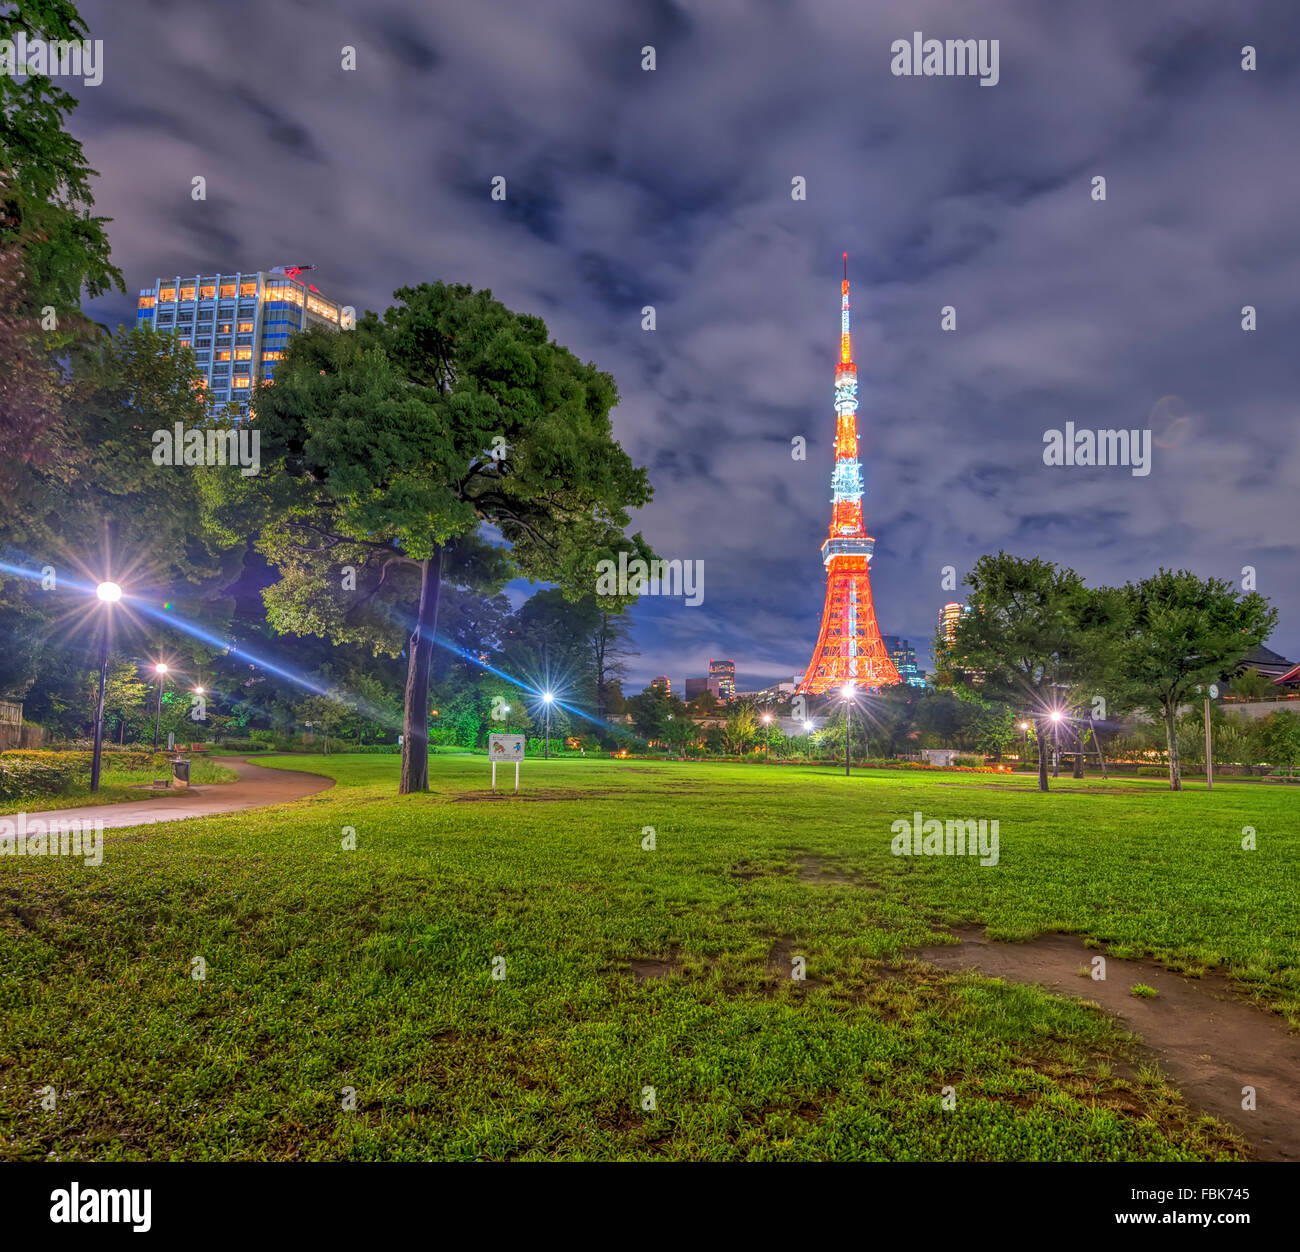 The view of Tokyo Tower at night from a park in Tokyo city, Japan - Stock Image